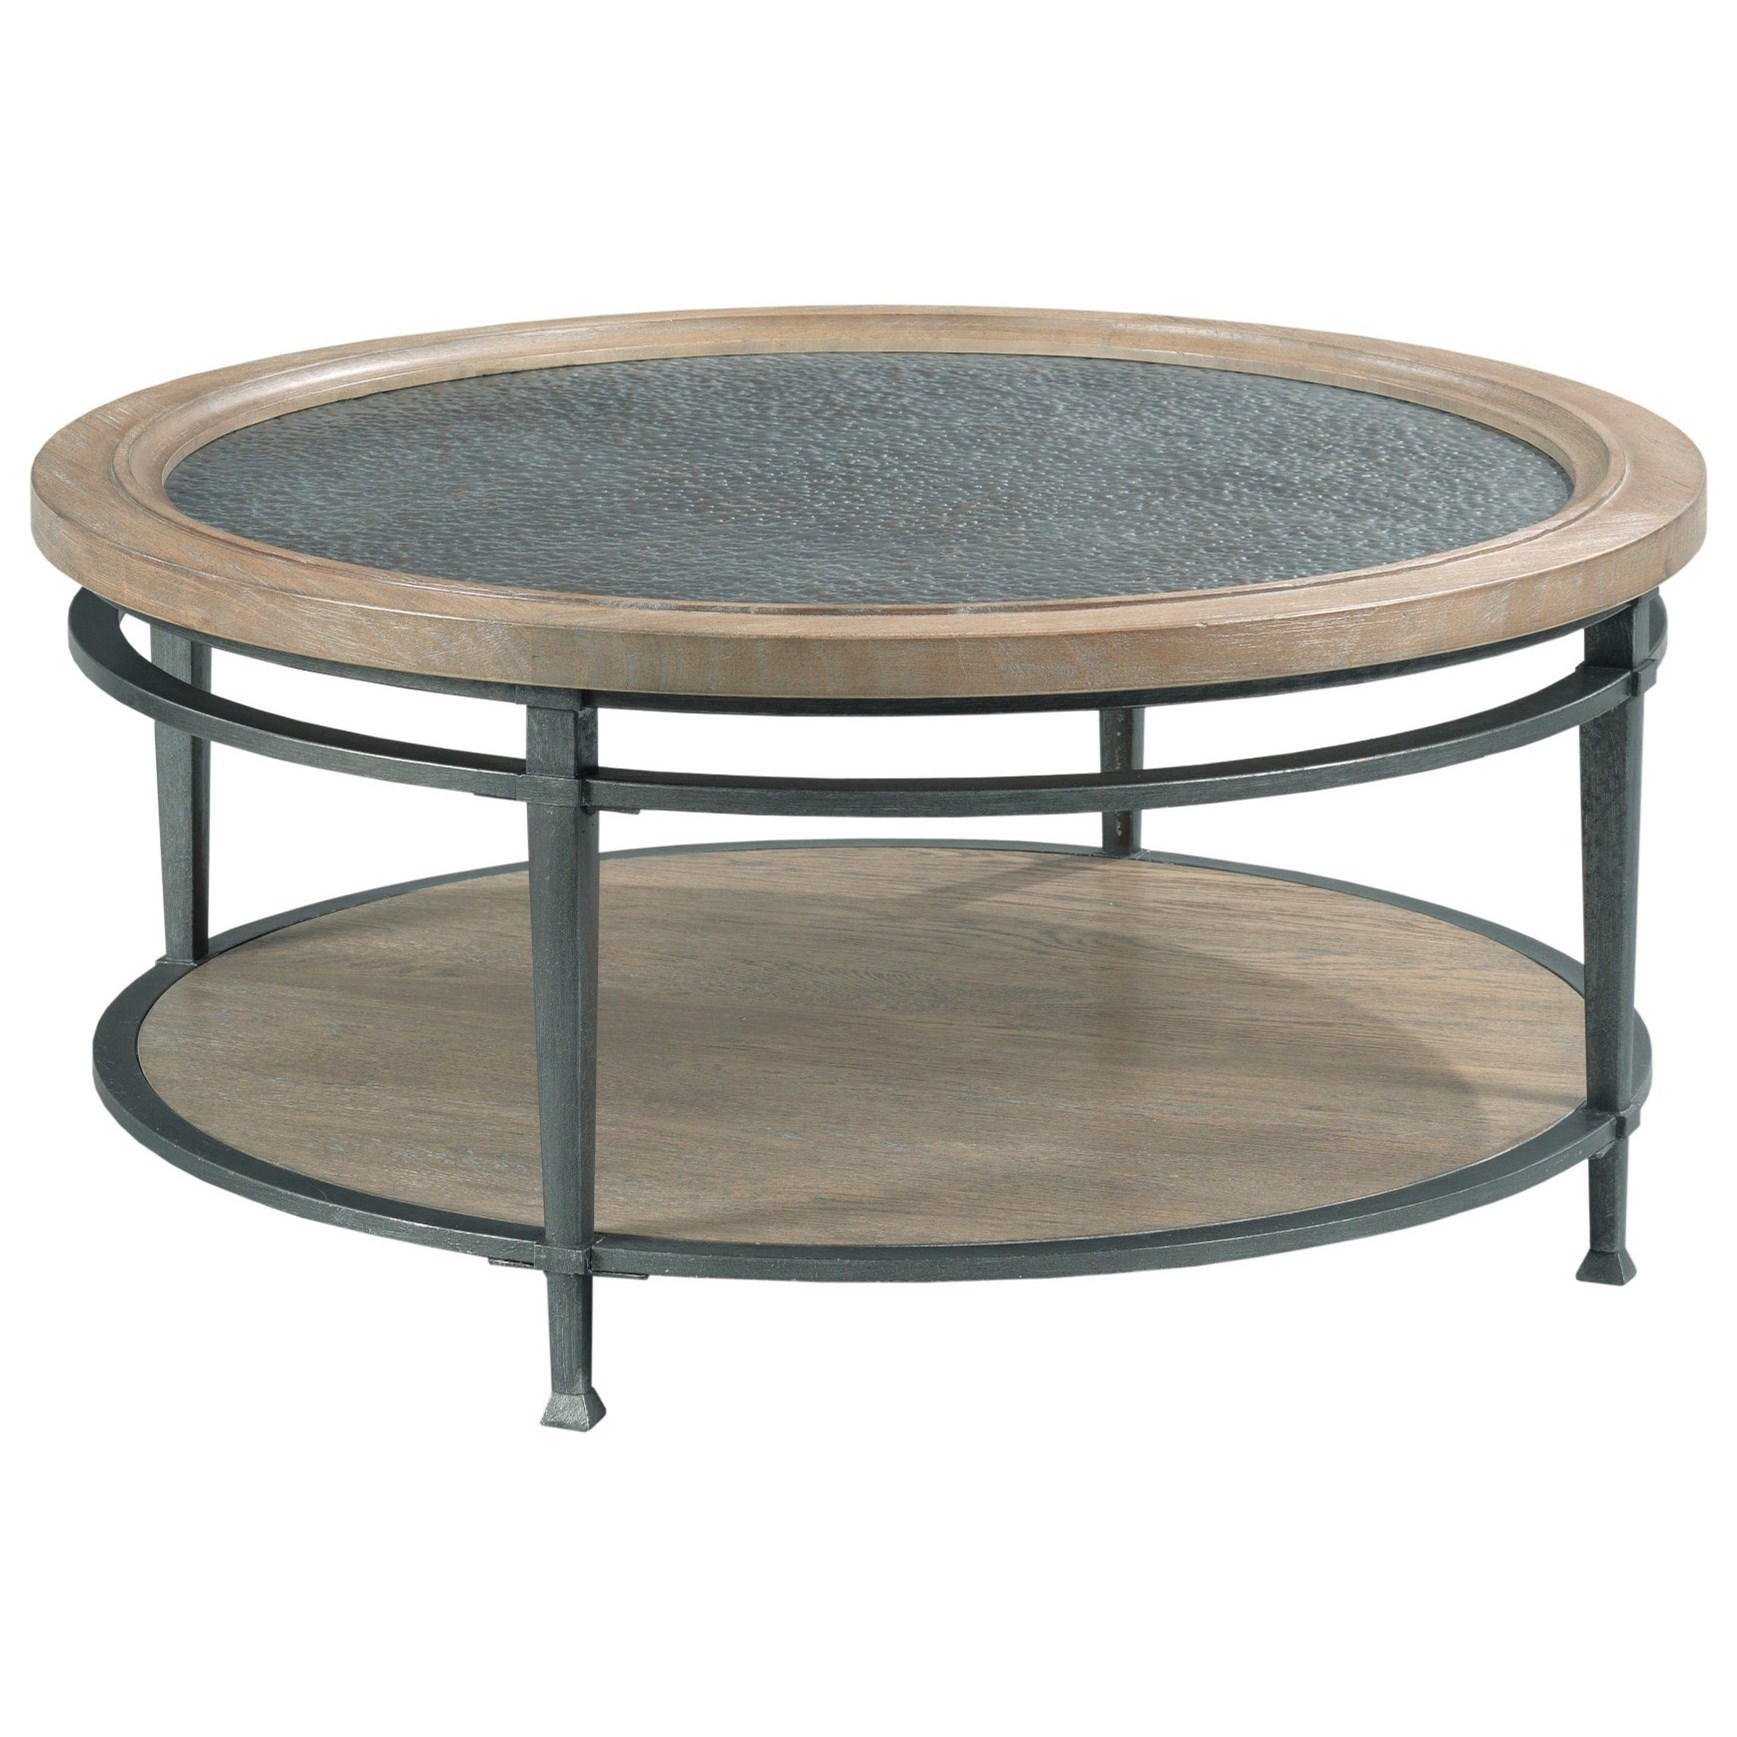 Austin Round Coffee Table by Hammary at Alison Craig Home Furnishings